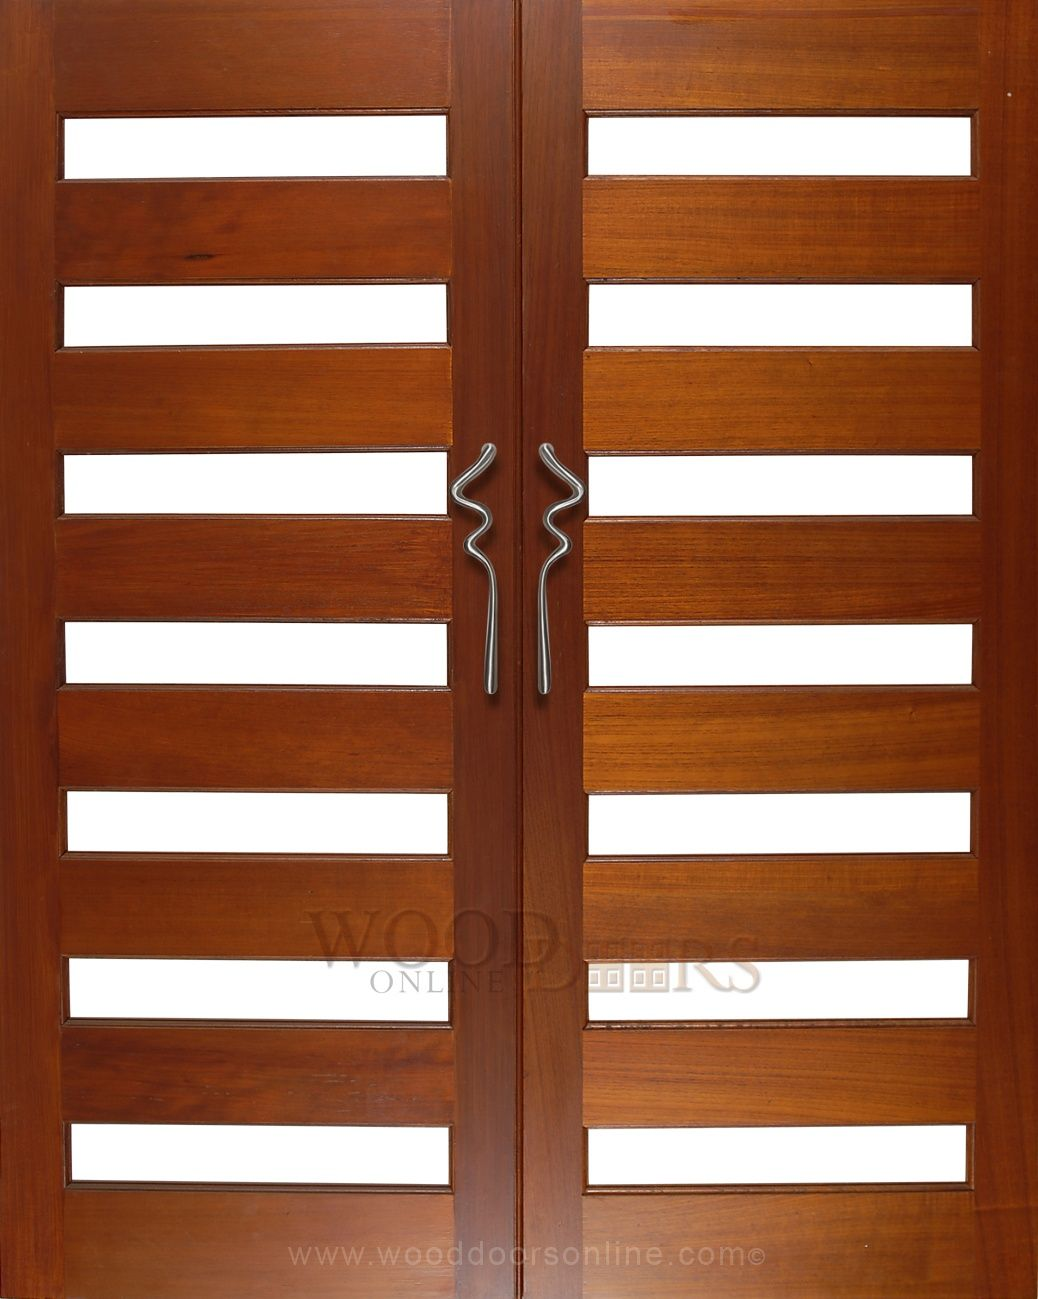 The Aqua front door handle mounted on these double doors is a truly ...